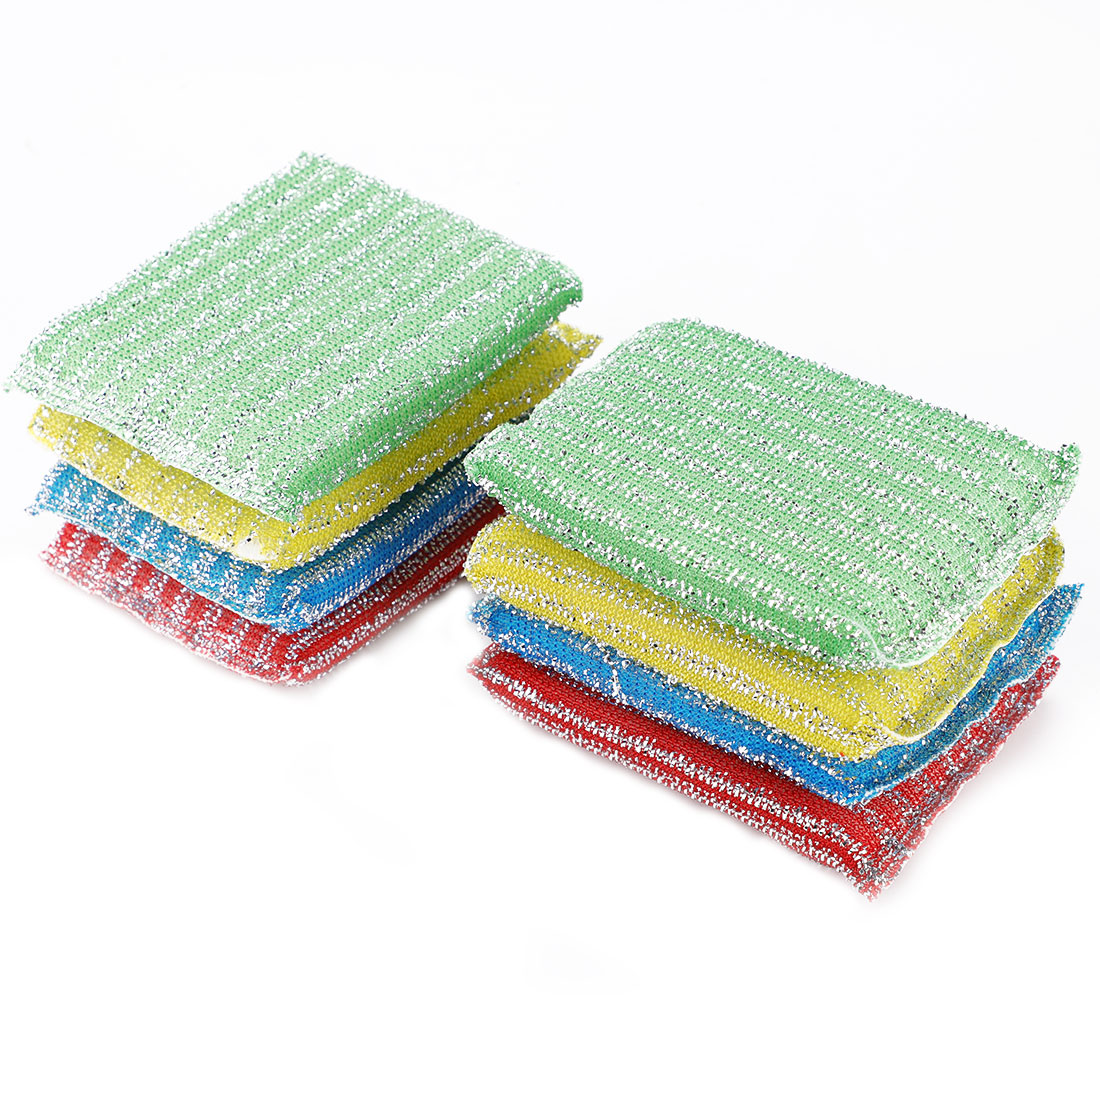 Home Kitchenware Bowl Dish Sponge Wash Scourer Scrubber Cleaning Pads 8pcs